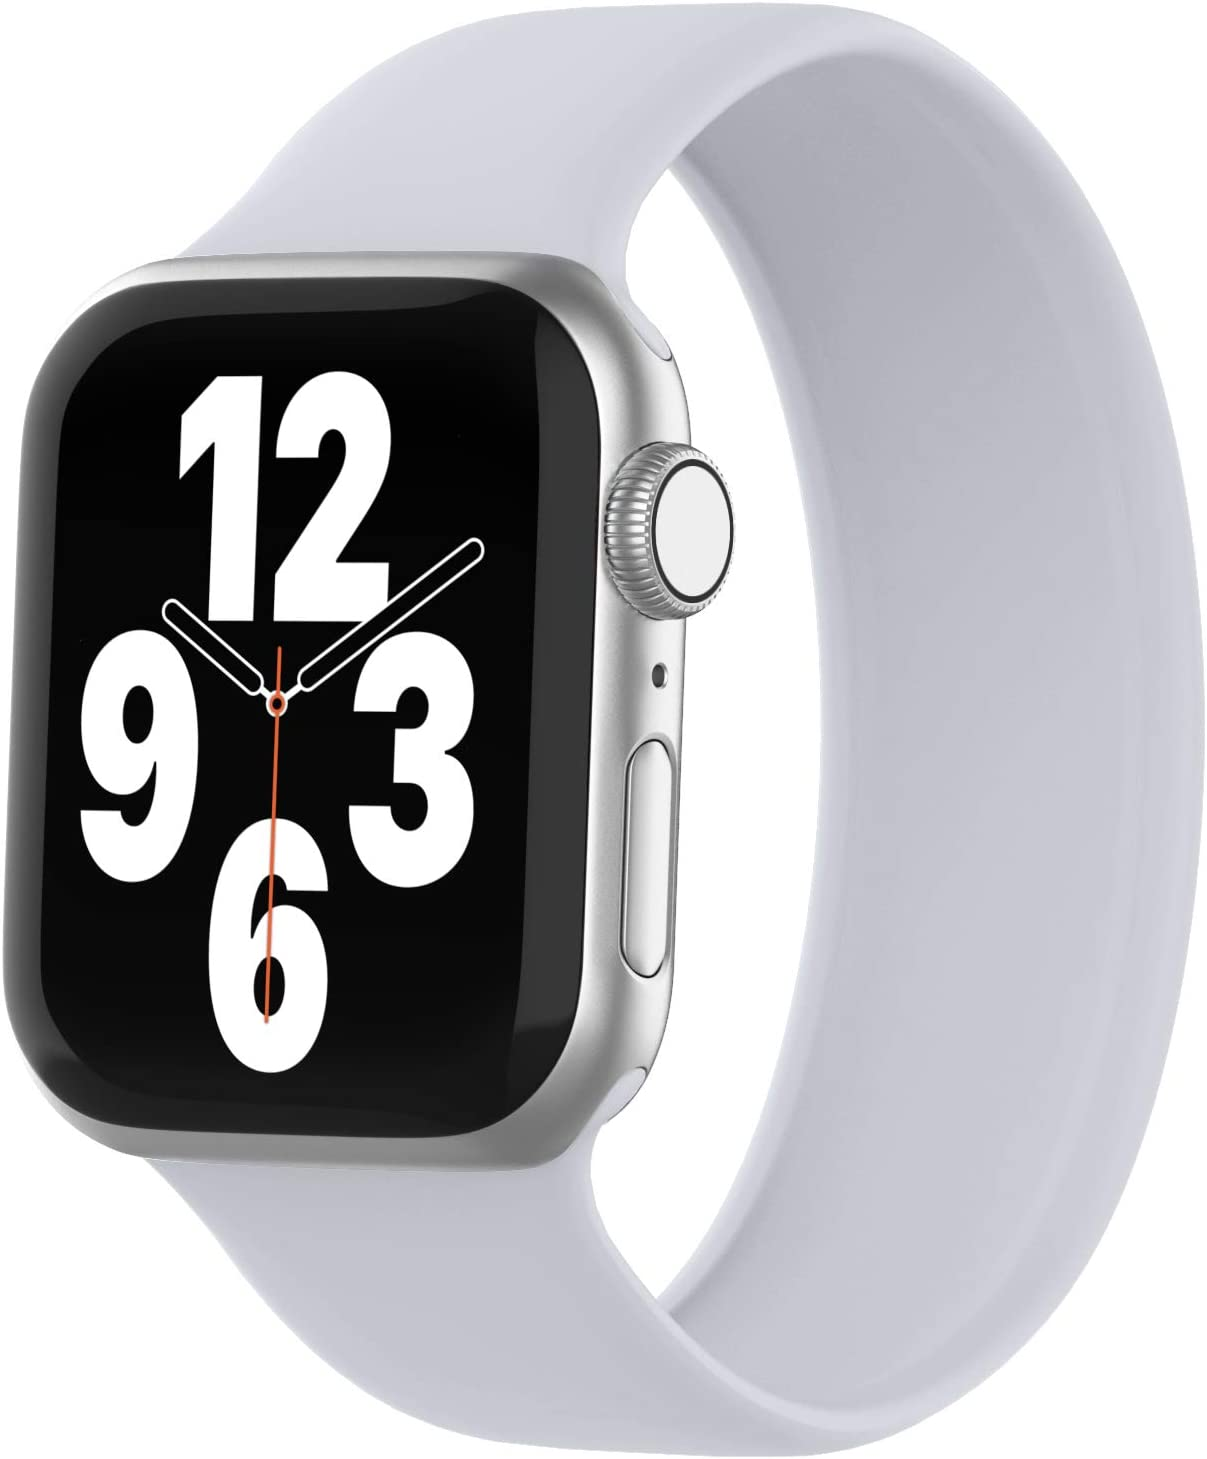 WASPO Solo Loop Band Compatible with Apple Watch Band 38mm 40mm 42mm 44mm, Sport Elastic Silicone Bands with No Clasps or Buckles Compatible for iWatch Series 6/SE/5/4/3/2/1(38mm/40mm-S, Fog)